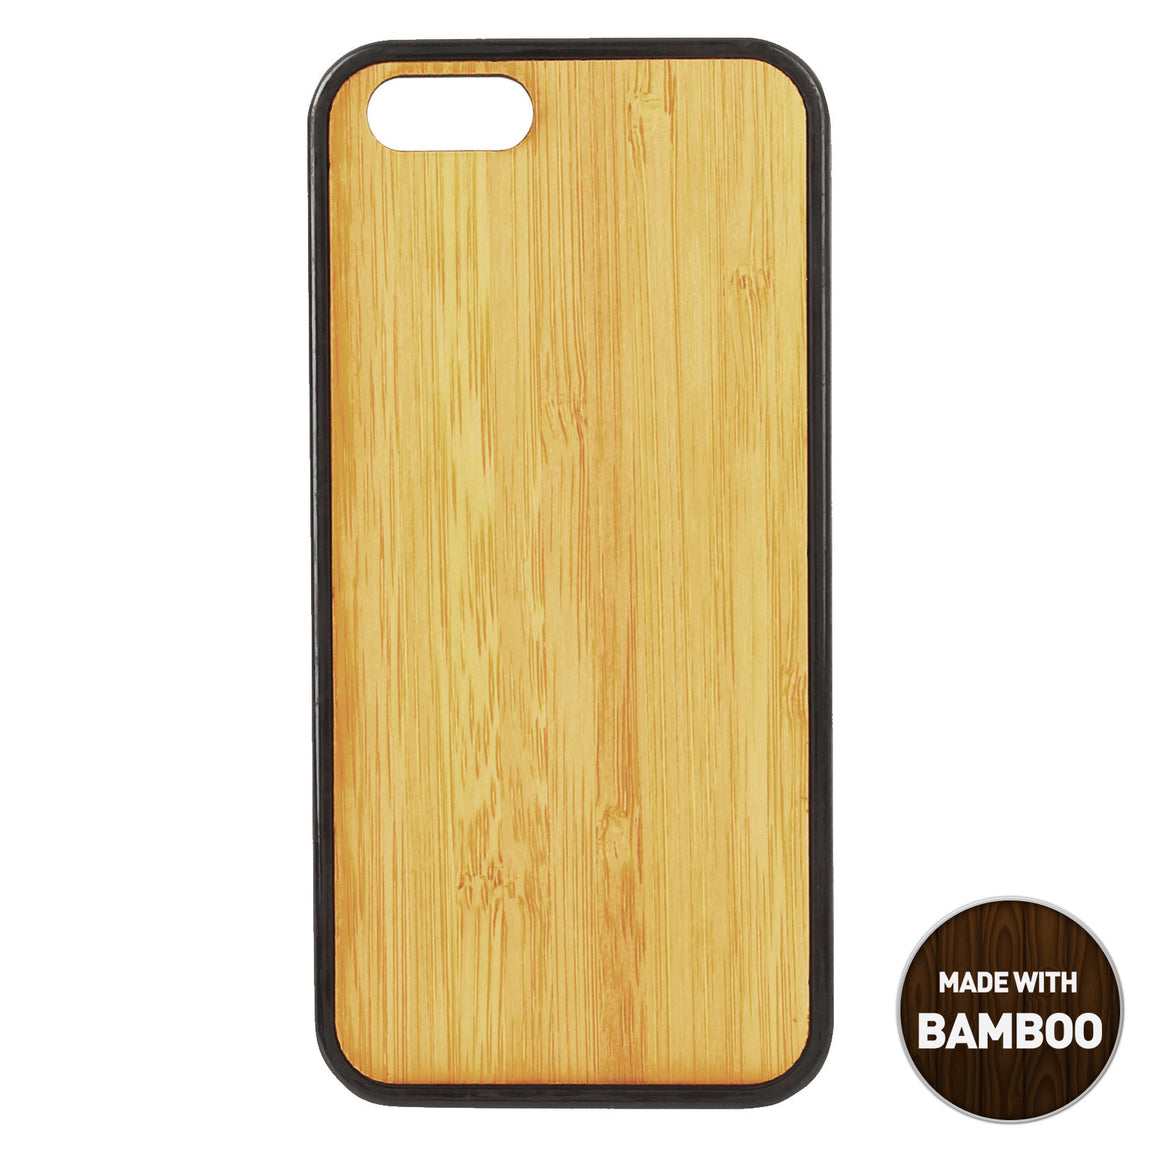 Custom Wooden Phone Case / iPhone 5/5s/SE / Create Your Own iPhone Case - iWood inc